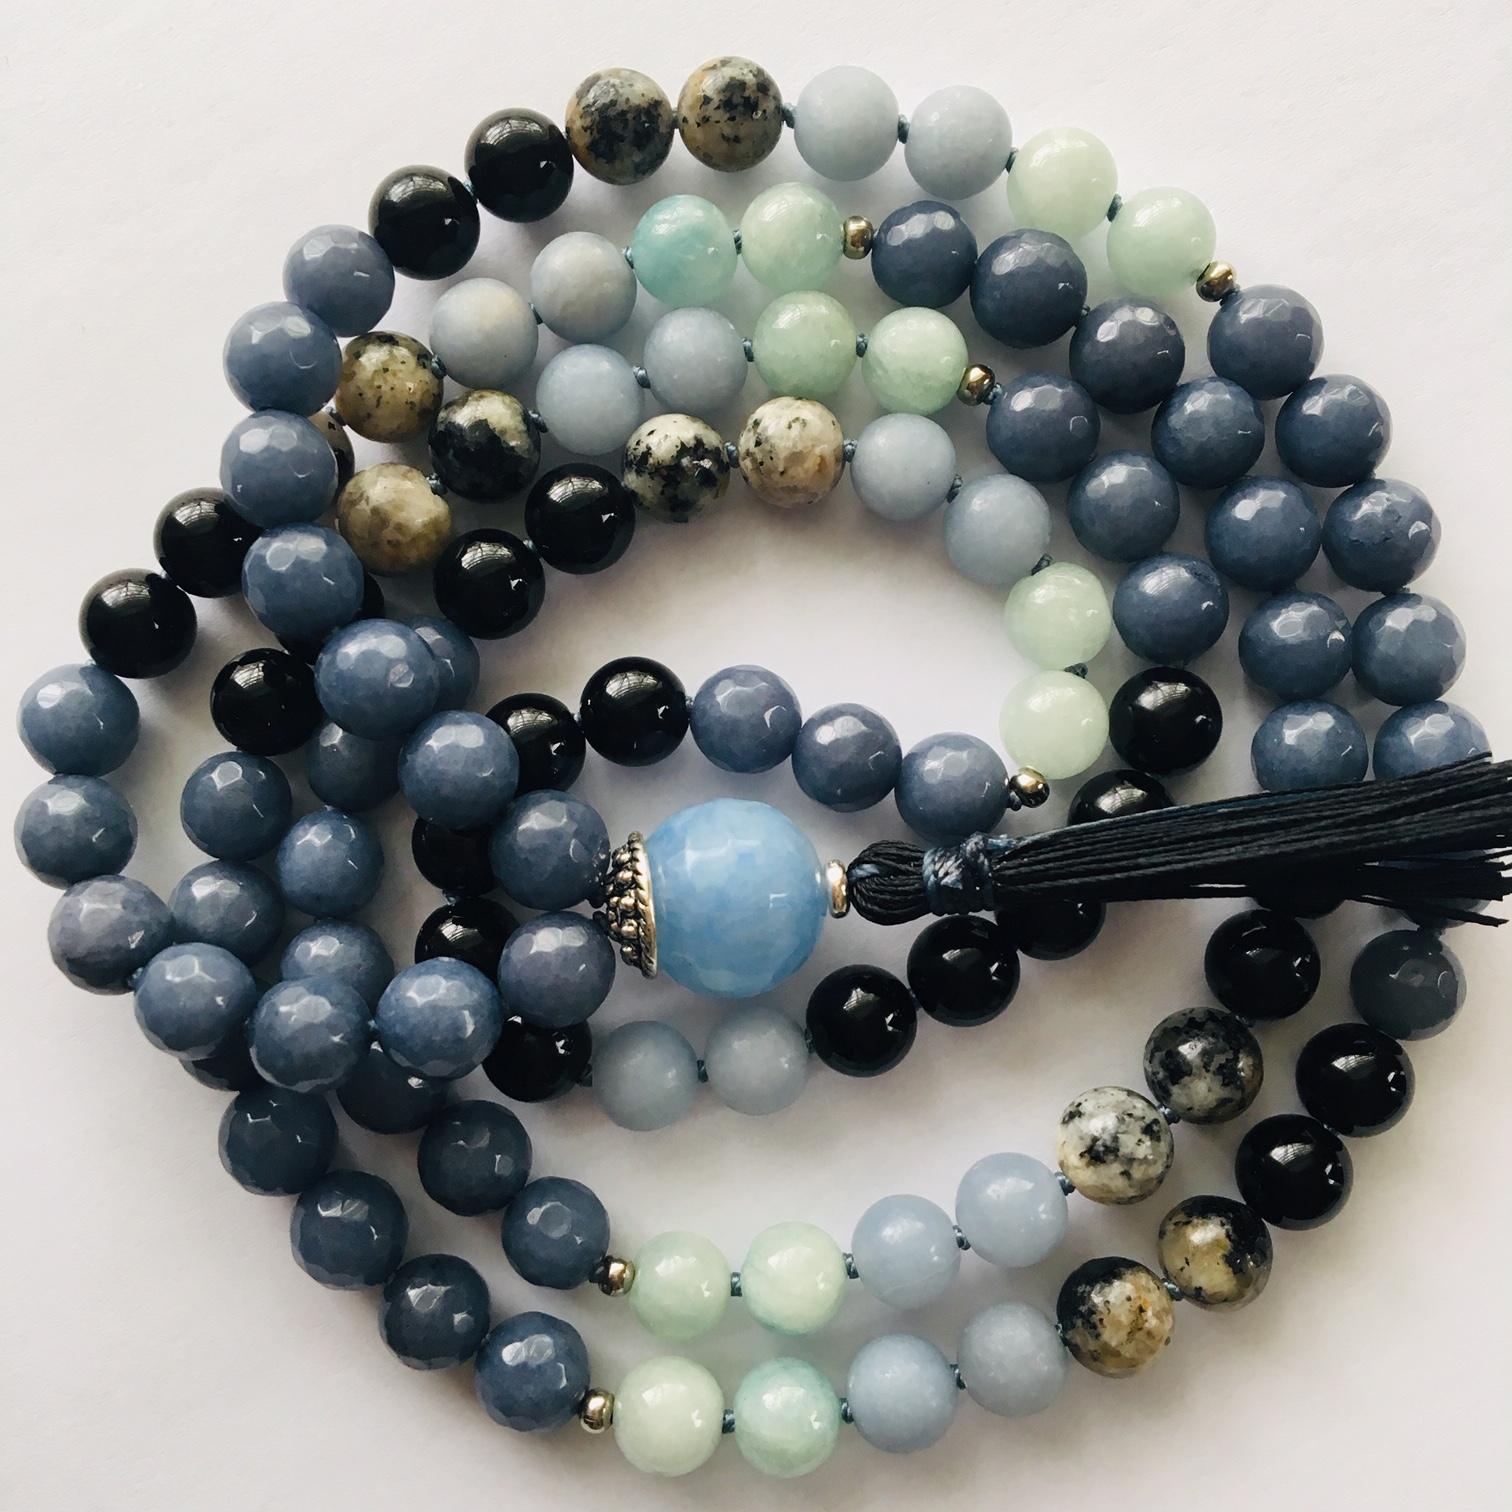 Honor Your Depth Mala  (8mm)  Sapphire Jade (dark blue) is a stone of wisdom and provides a break through in understanding, Aquamarine (light blue green) is a calming and soothing stone that inspires truth and trust, Angelite (blue) helps relieve tension and stress and helps you speak your truth, carries the vibration of grace, Jasper (black-grey) helps manifest strength, courage and wisdom.